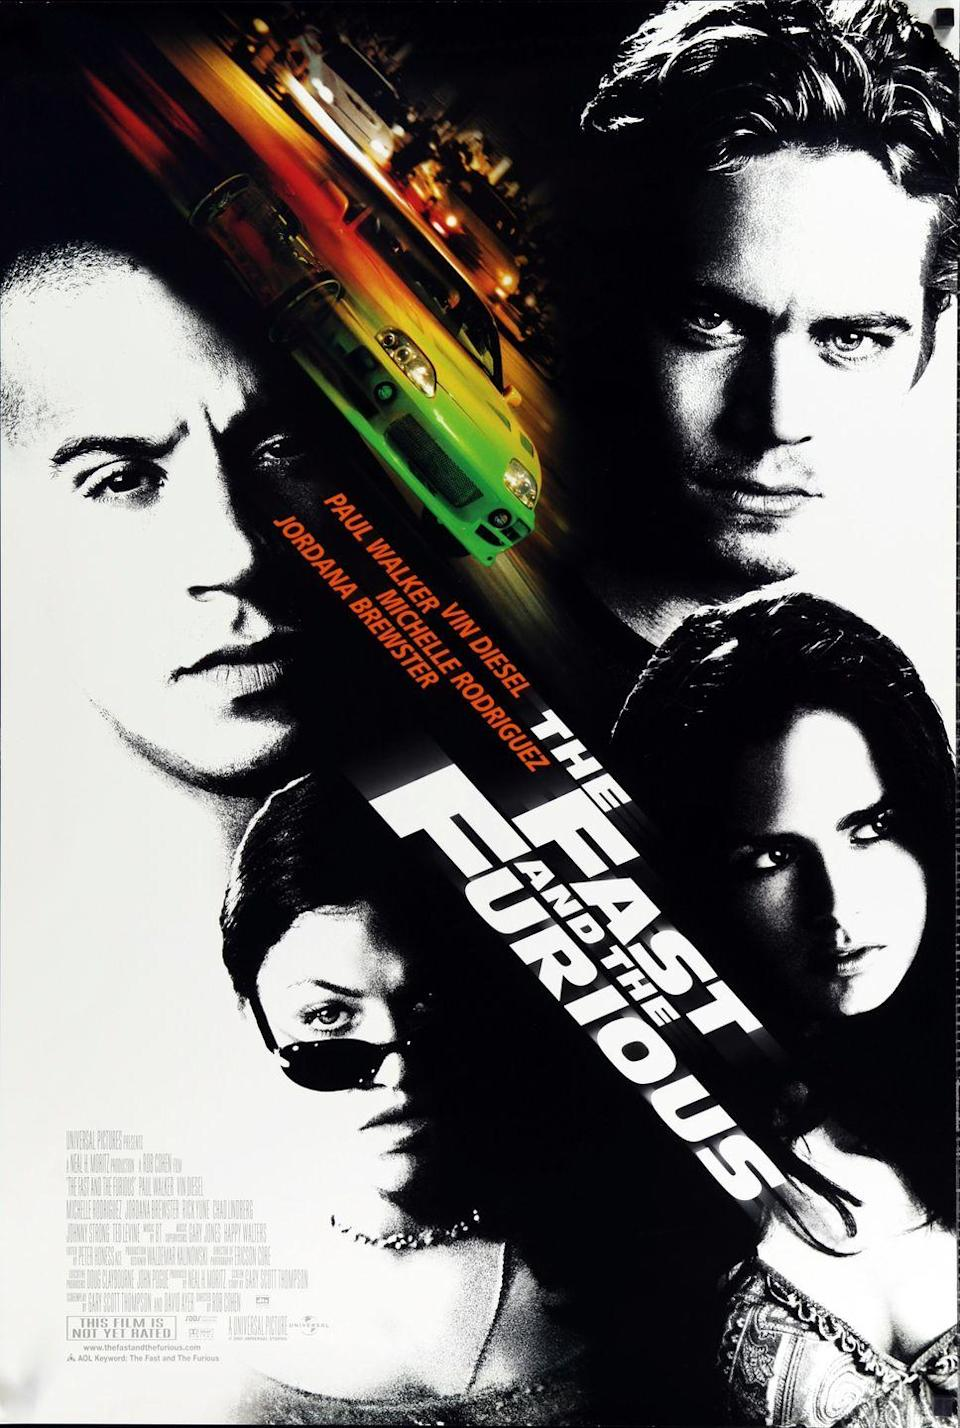 <p>Who knew illegal street racing could be so much fun to watch. Dominic Toretto (Vin Diesel) is a pro at street racing and takes Brian (Paul Walker) under his watch to become one too. The problem? He's an undercover cop. Released on June 22, 2001, the franchise has seen great success but is supposedly coming to an end with the upcoming 11th film. </p>